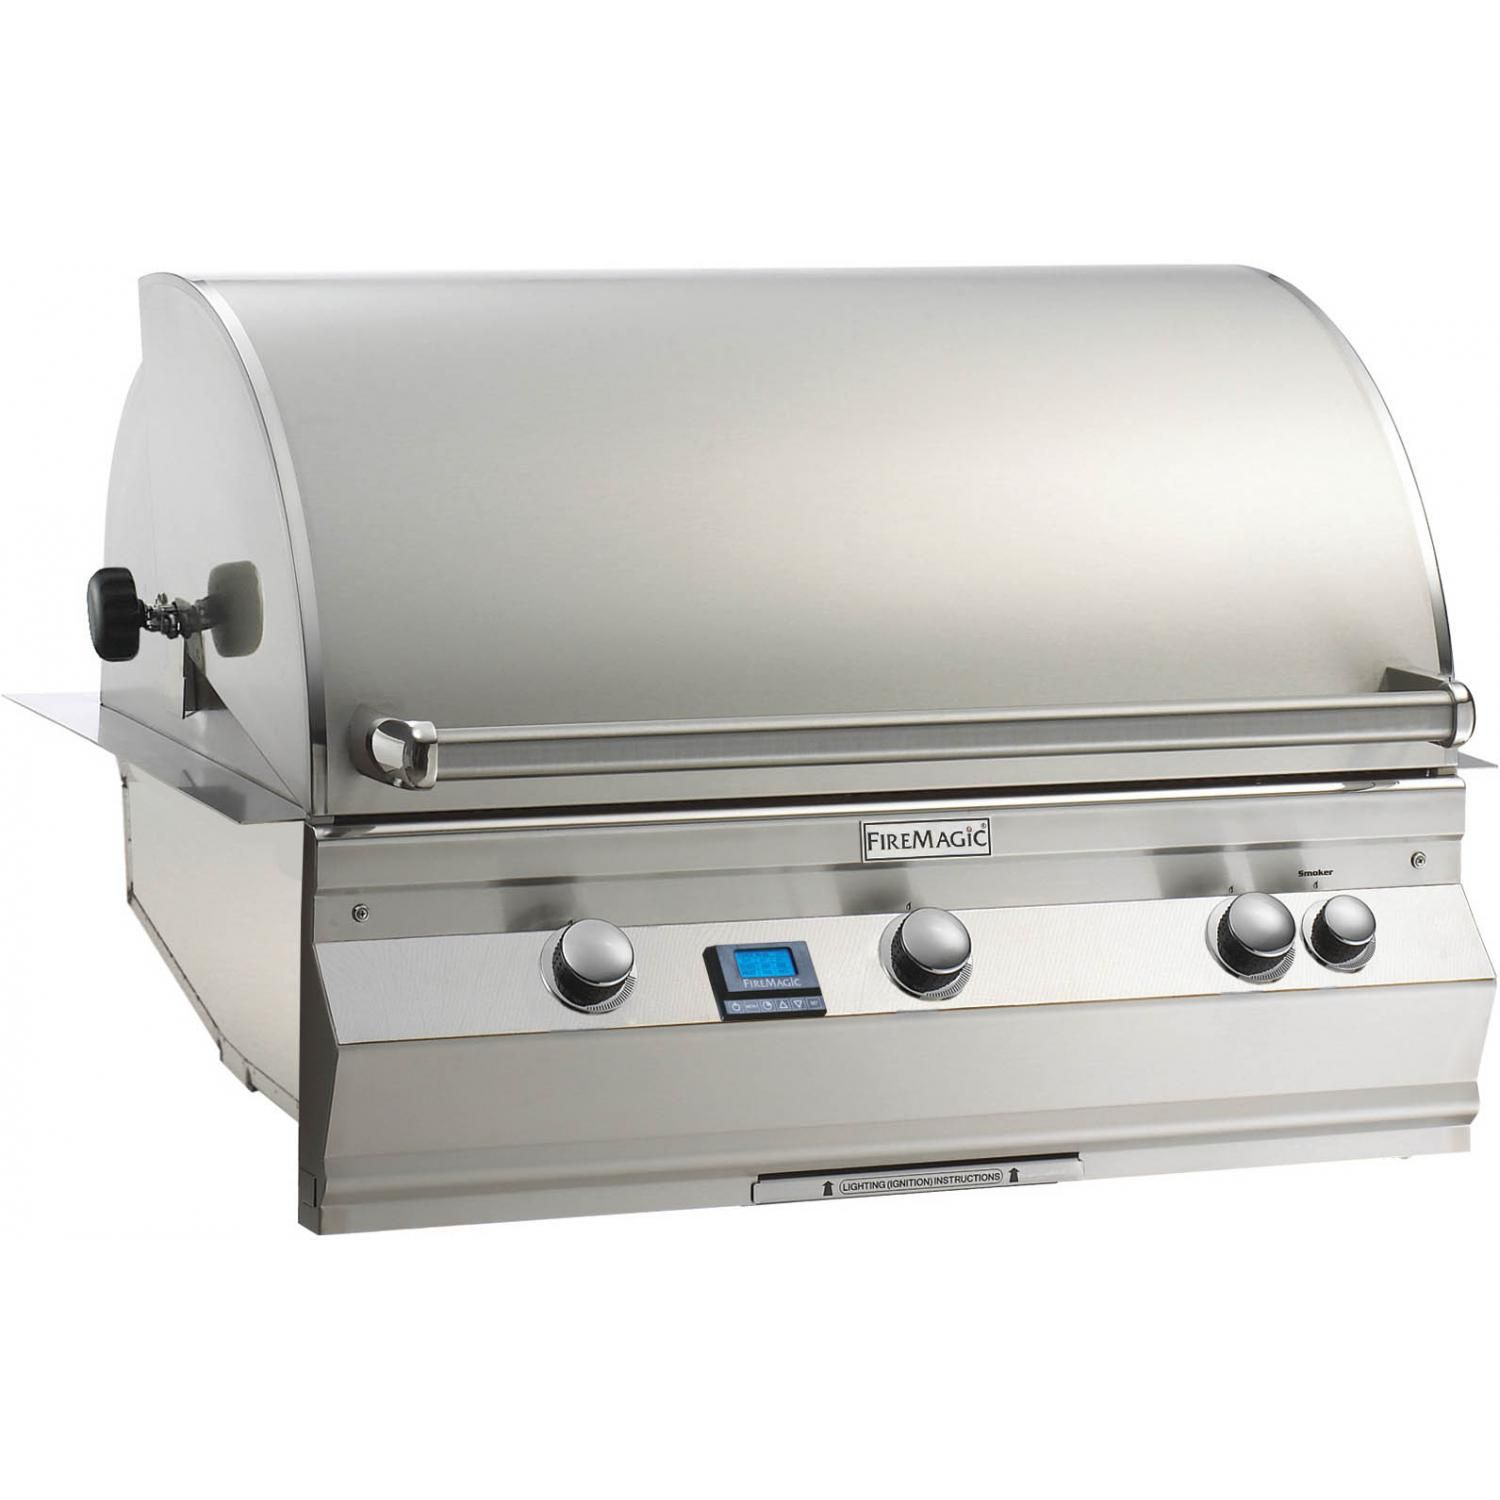 Outdoor Kitchen Grill Firemagic Aurora A790i 6e1n In Stainless Steel With Images Built In Grill Gas Grill Natural Gas Bbq Grill